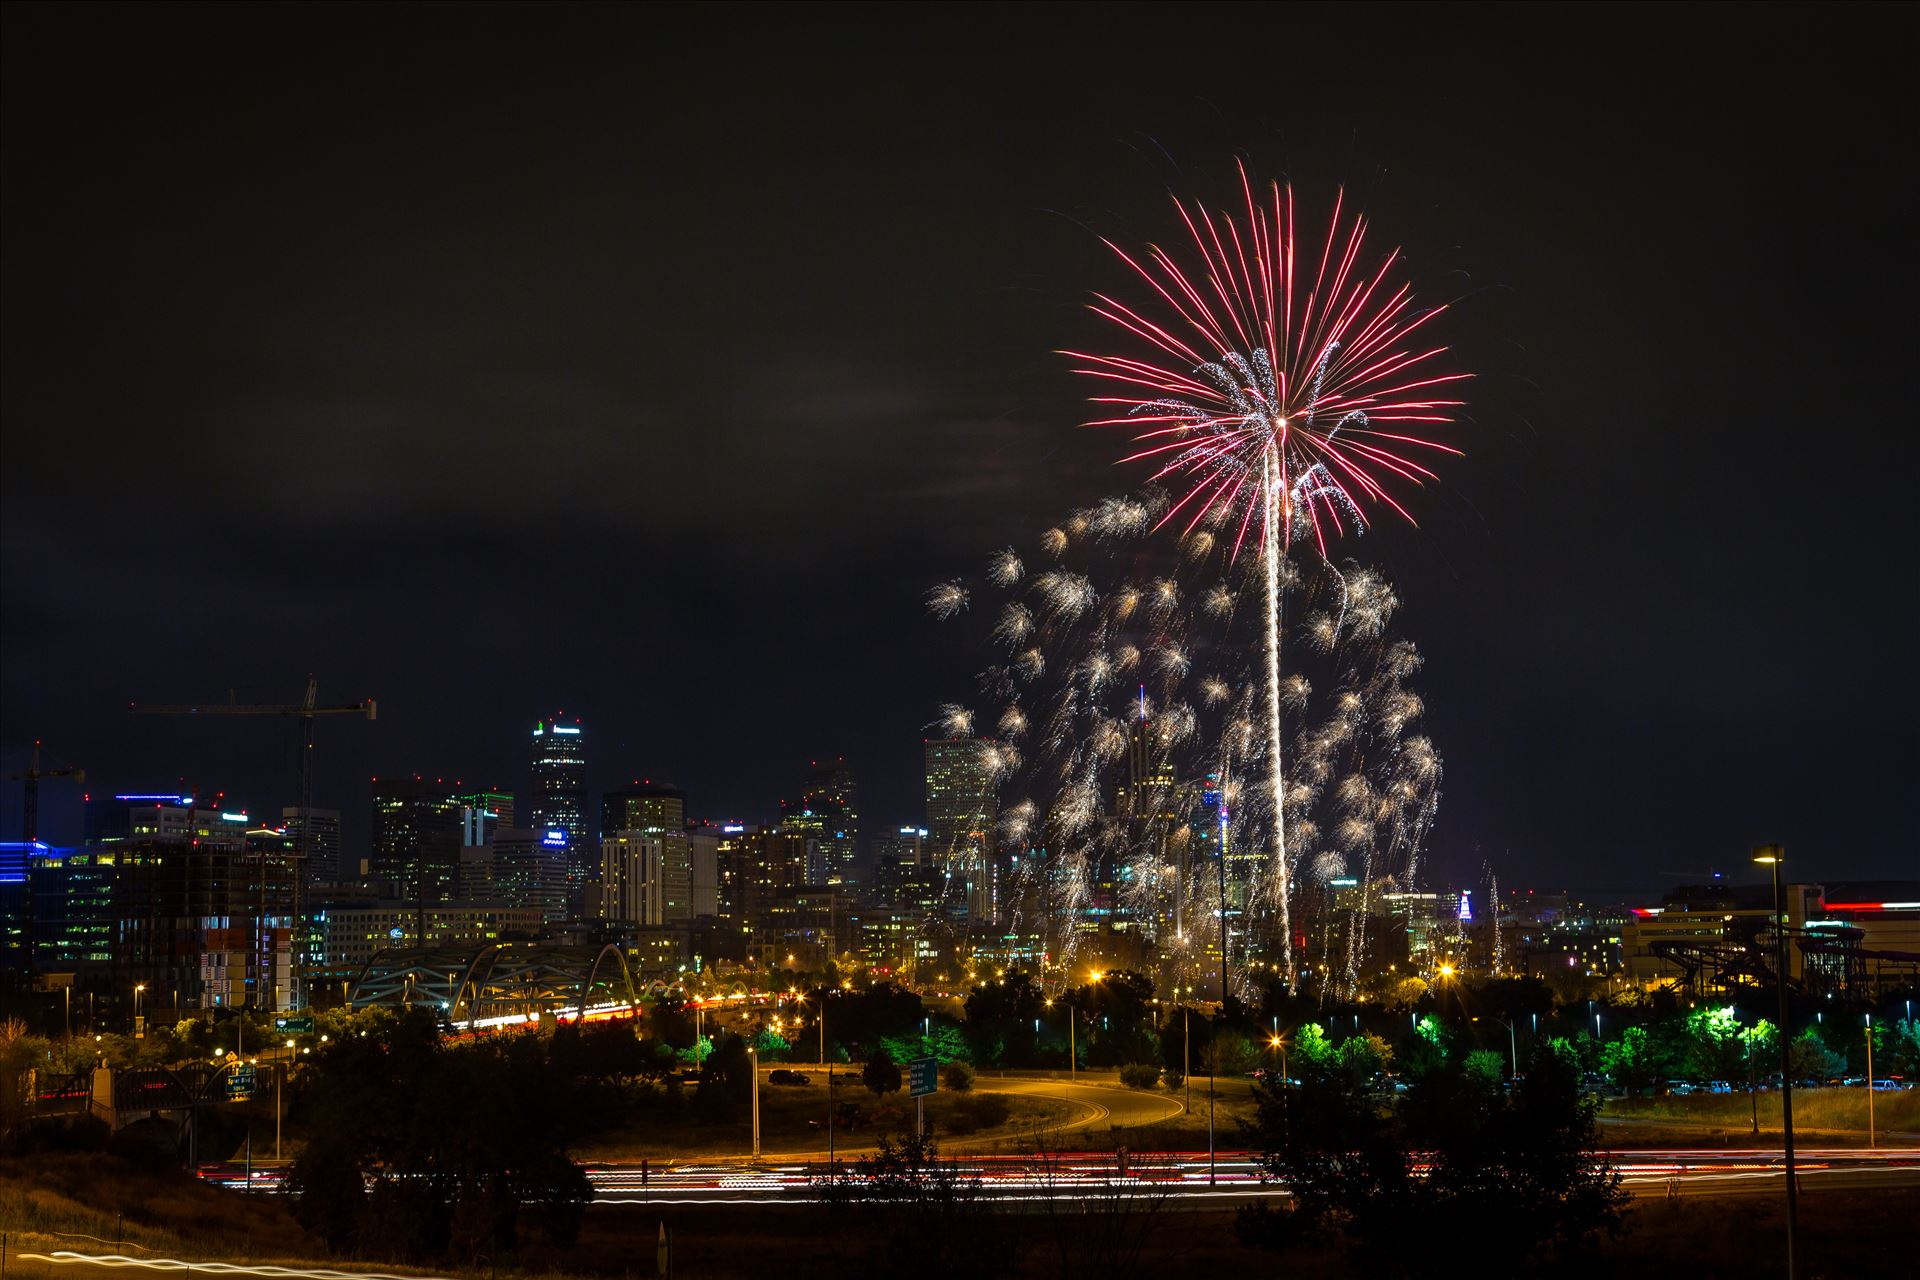 Elitch's Fireworks 2016 - 2 - Fireworks from Elitch Gardens, taken near Speer and Zuni in Denver, Colorado. by D Scott Smith